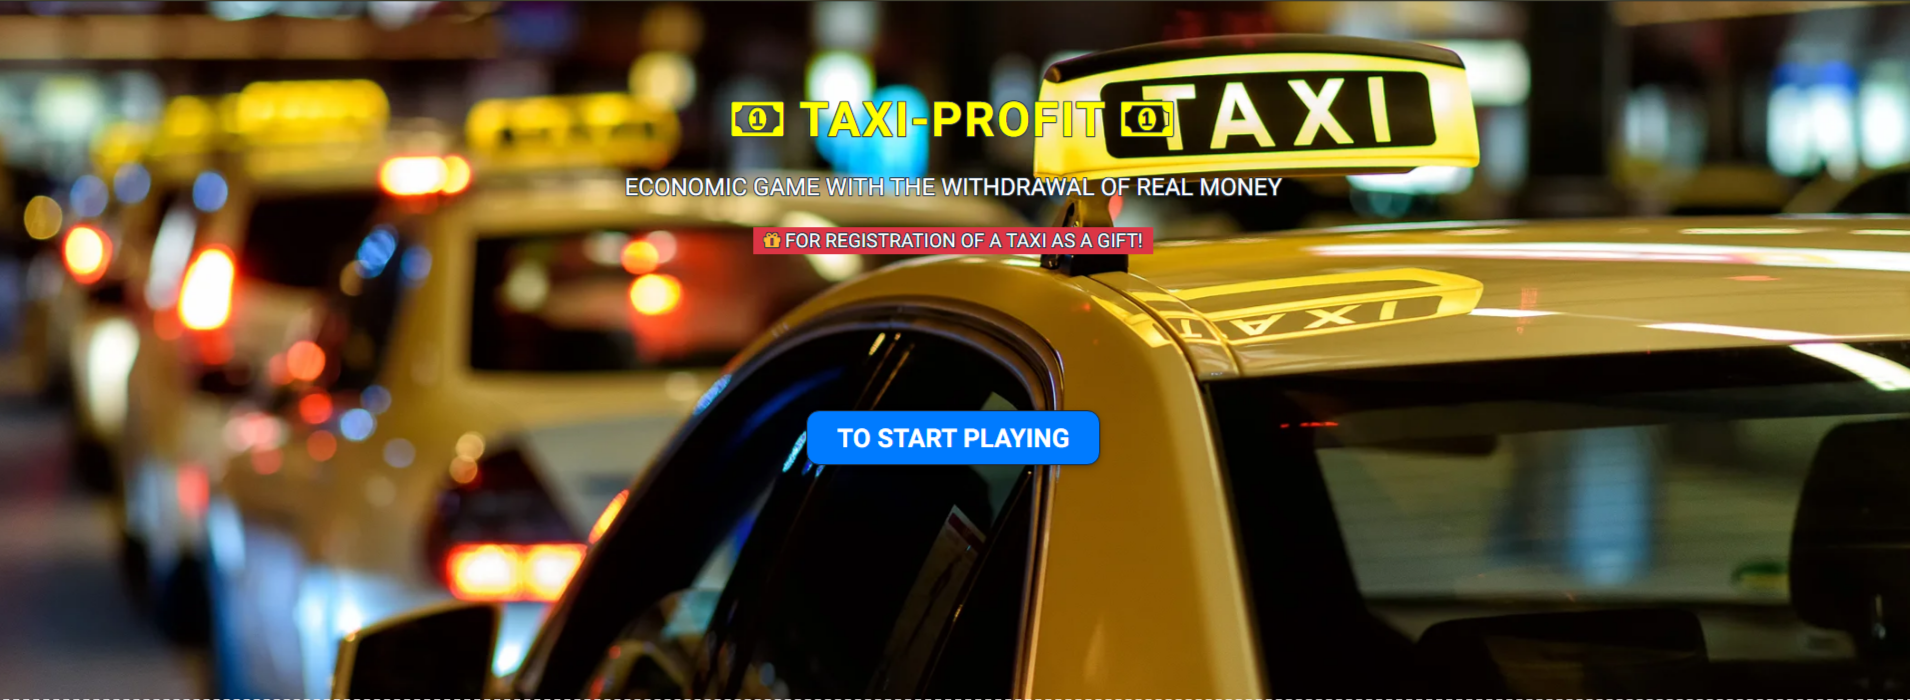 taxi-profit.biz review   -   review of taxi-profit.biz taxi-profit.biz reviews - reviews of taxi-profit.biz taxi-profit review  - review of taxi-profit taxi-profit reviews - reviews of taxi-profit taxi-profit.biz scam or legit  - Is taxi-profit.biz scam or legit?